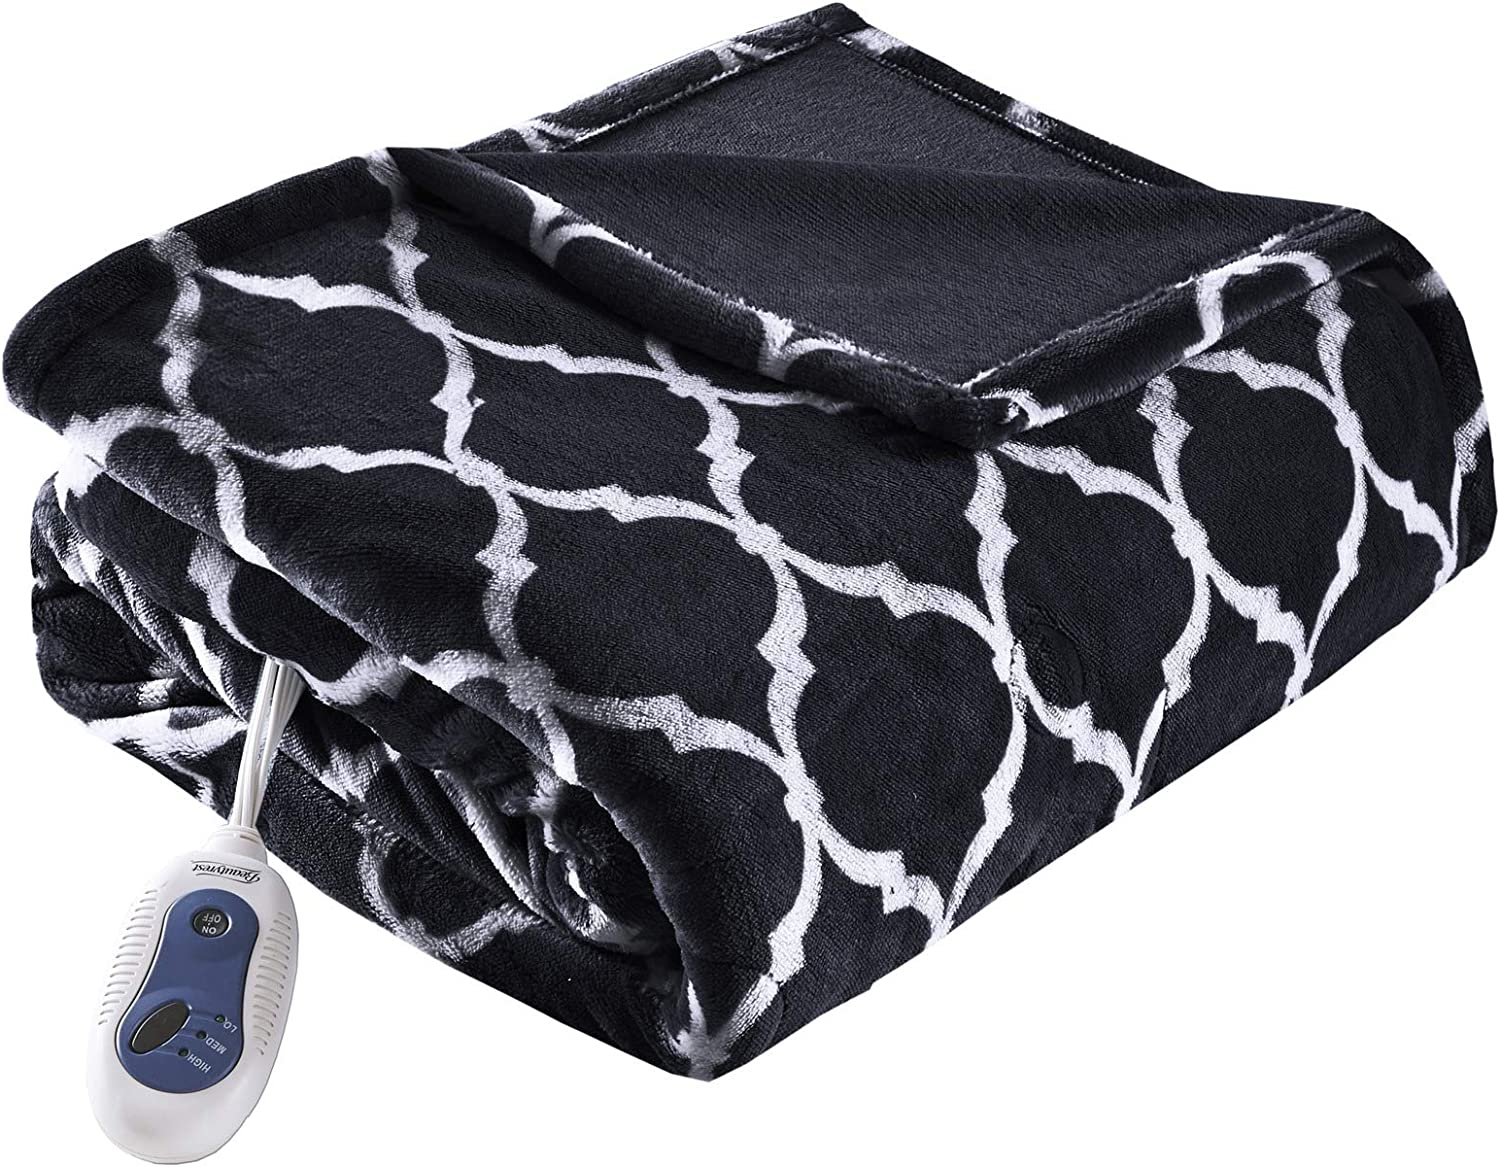 Beautyrest Plush Electric Max 77% OFF Max 83% OFF Throw Blanket – Comfort Te Secure